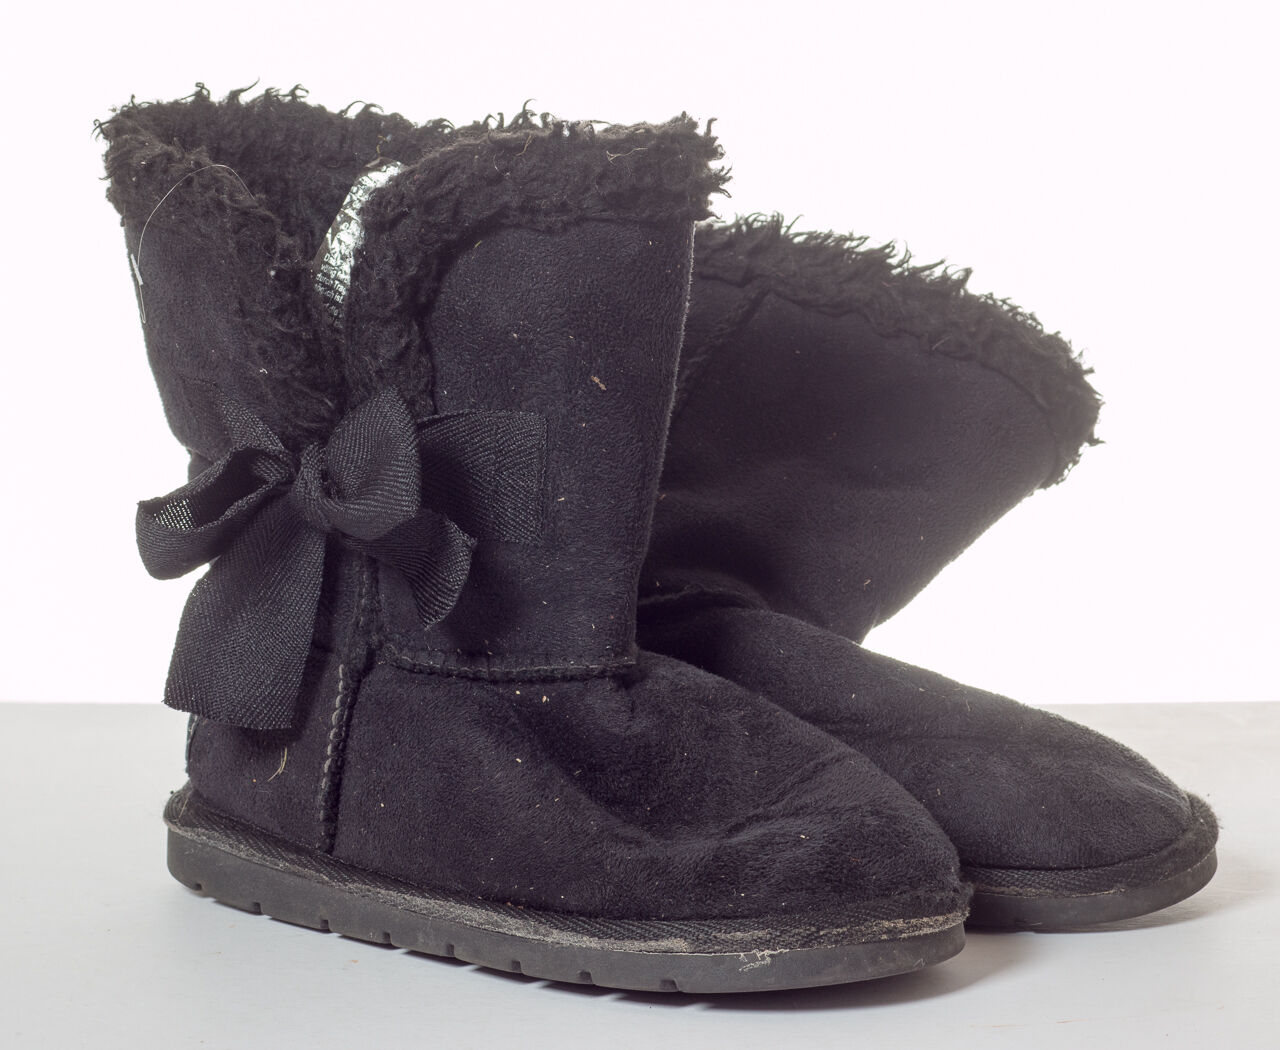 Pair of girl's ankle boots